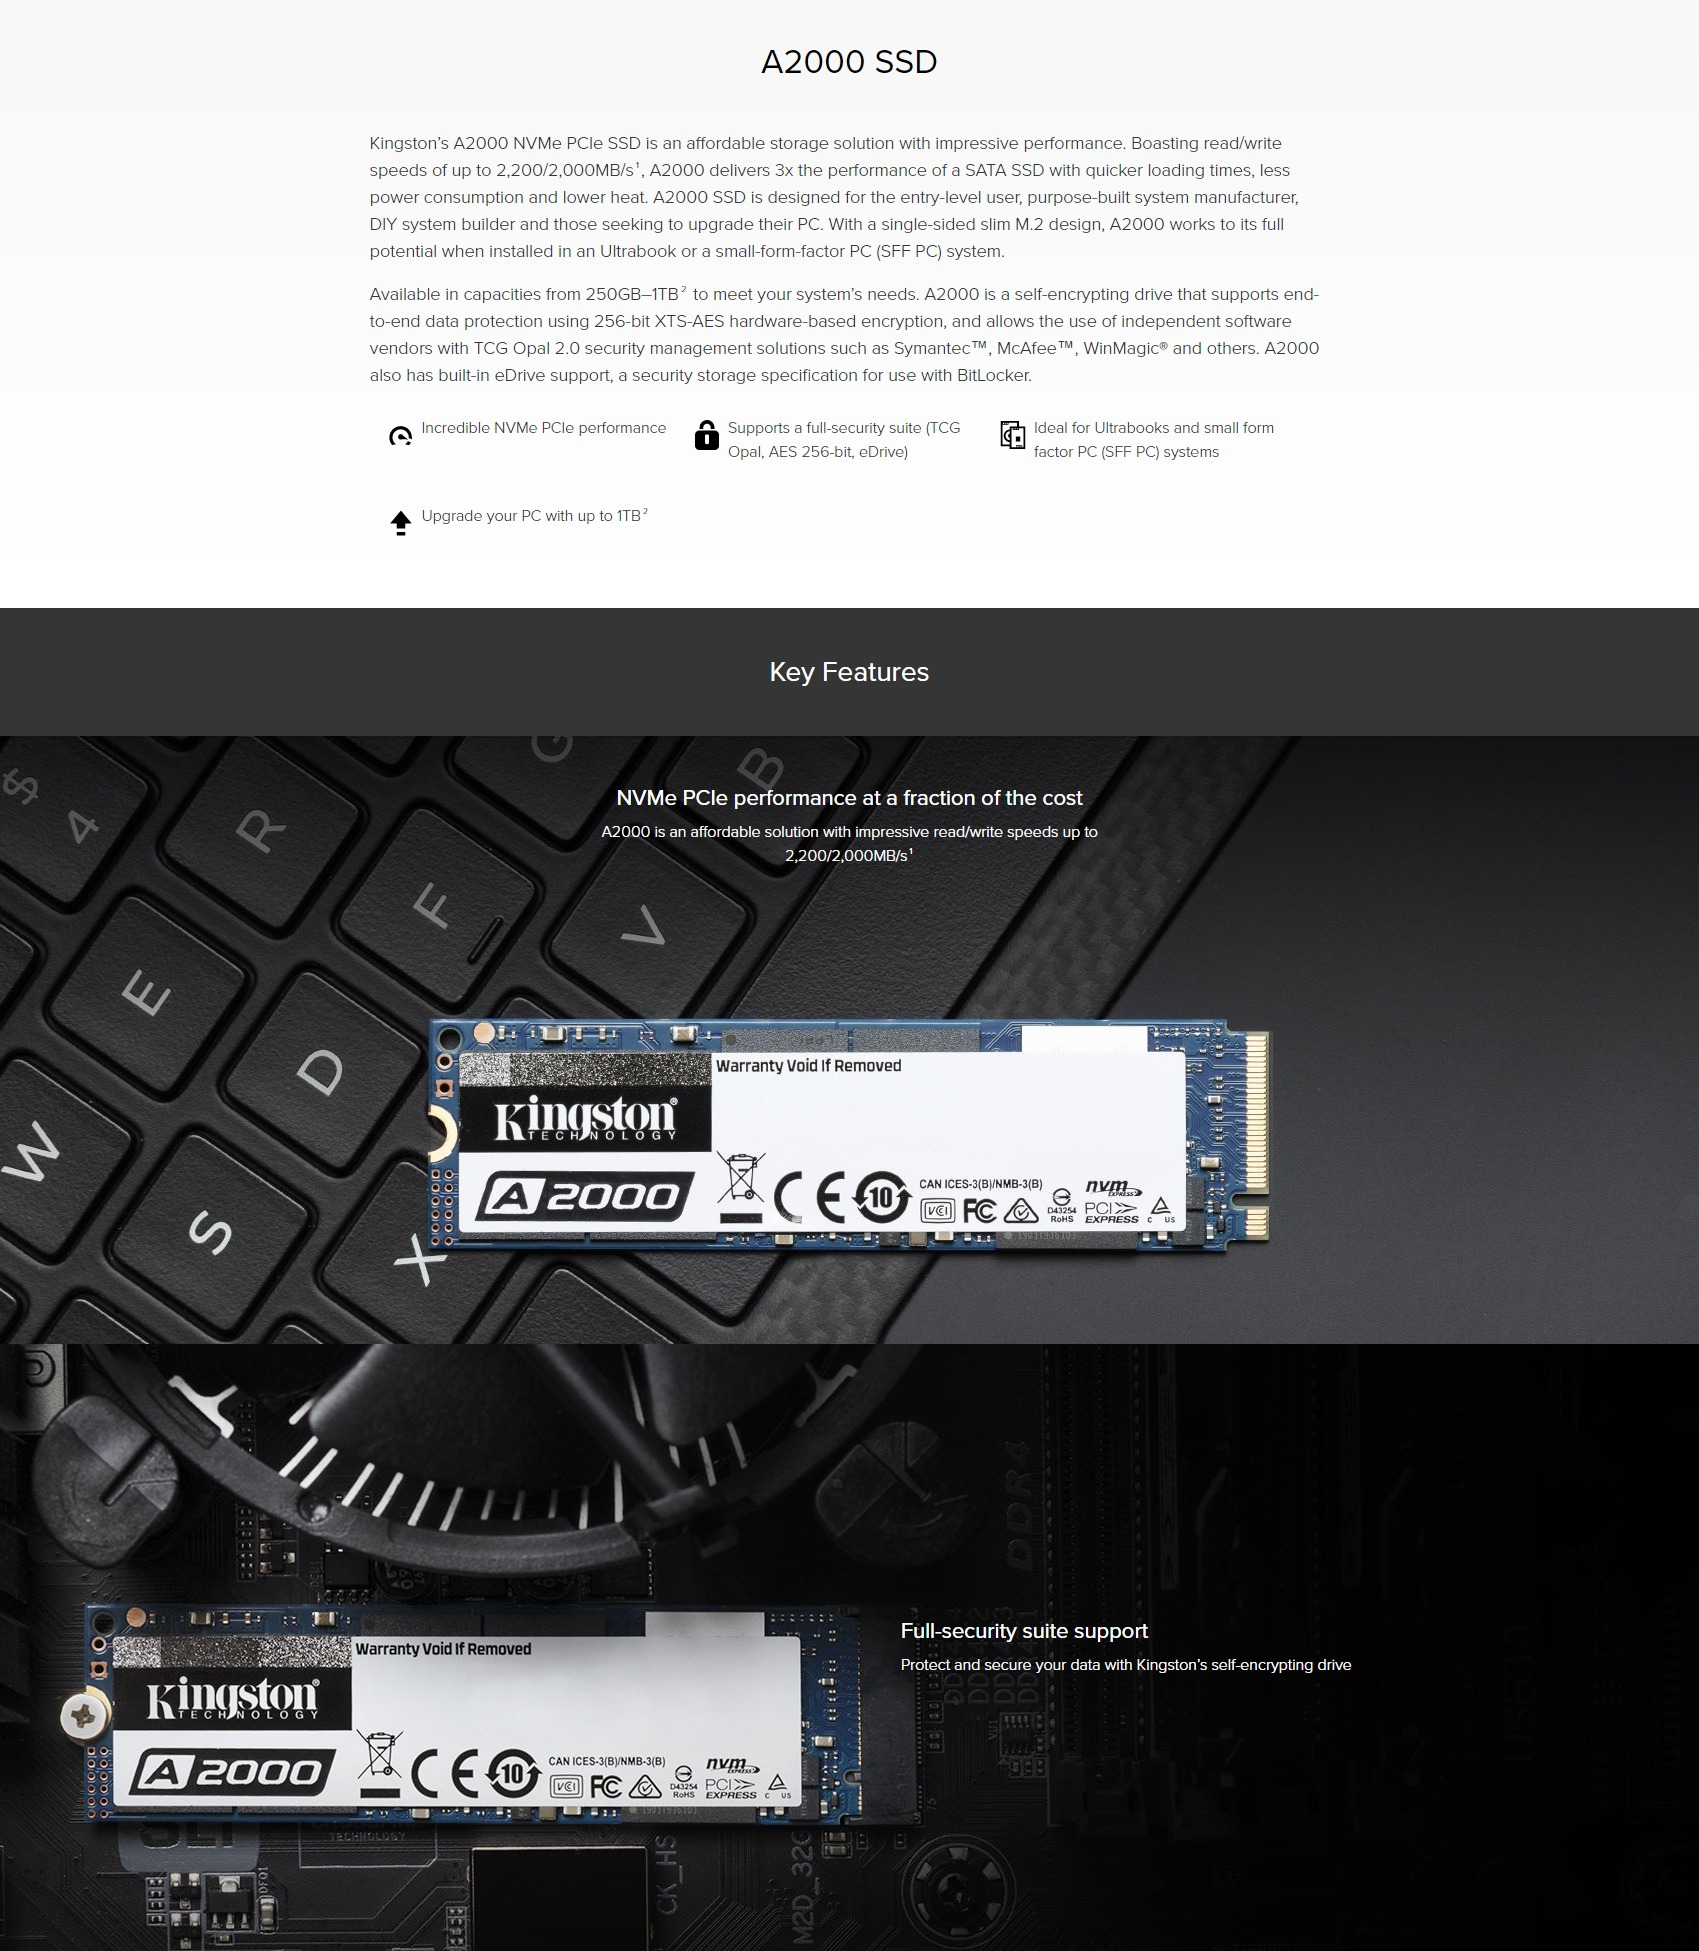 A large marketing image providing additional information about the product Kingston A2000 250GB NVMe M.2 SSD - Additional alt info not provided